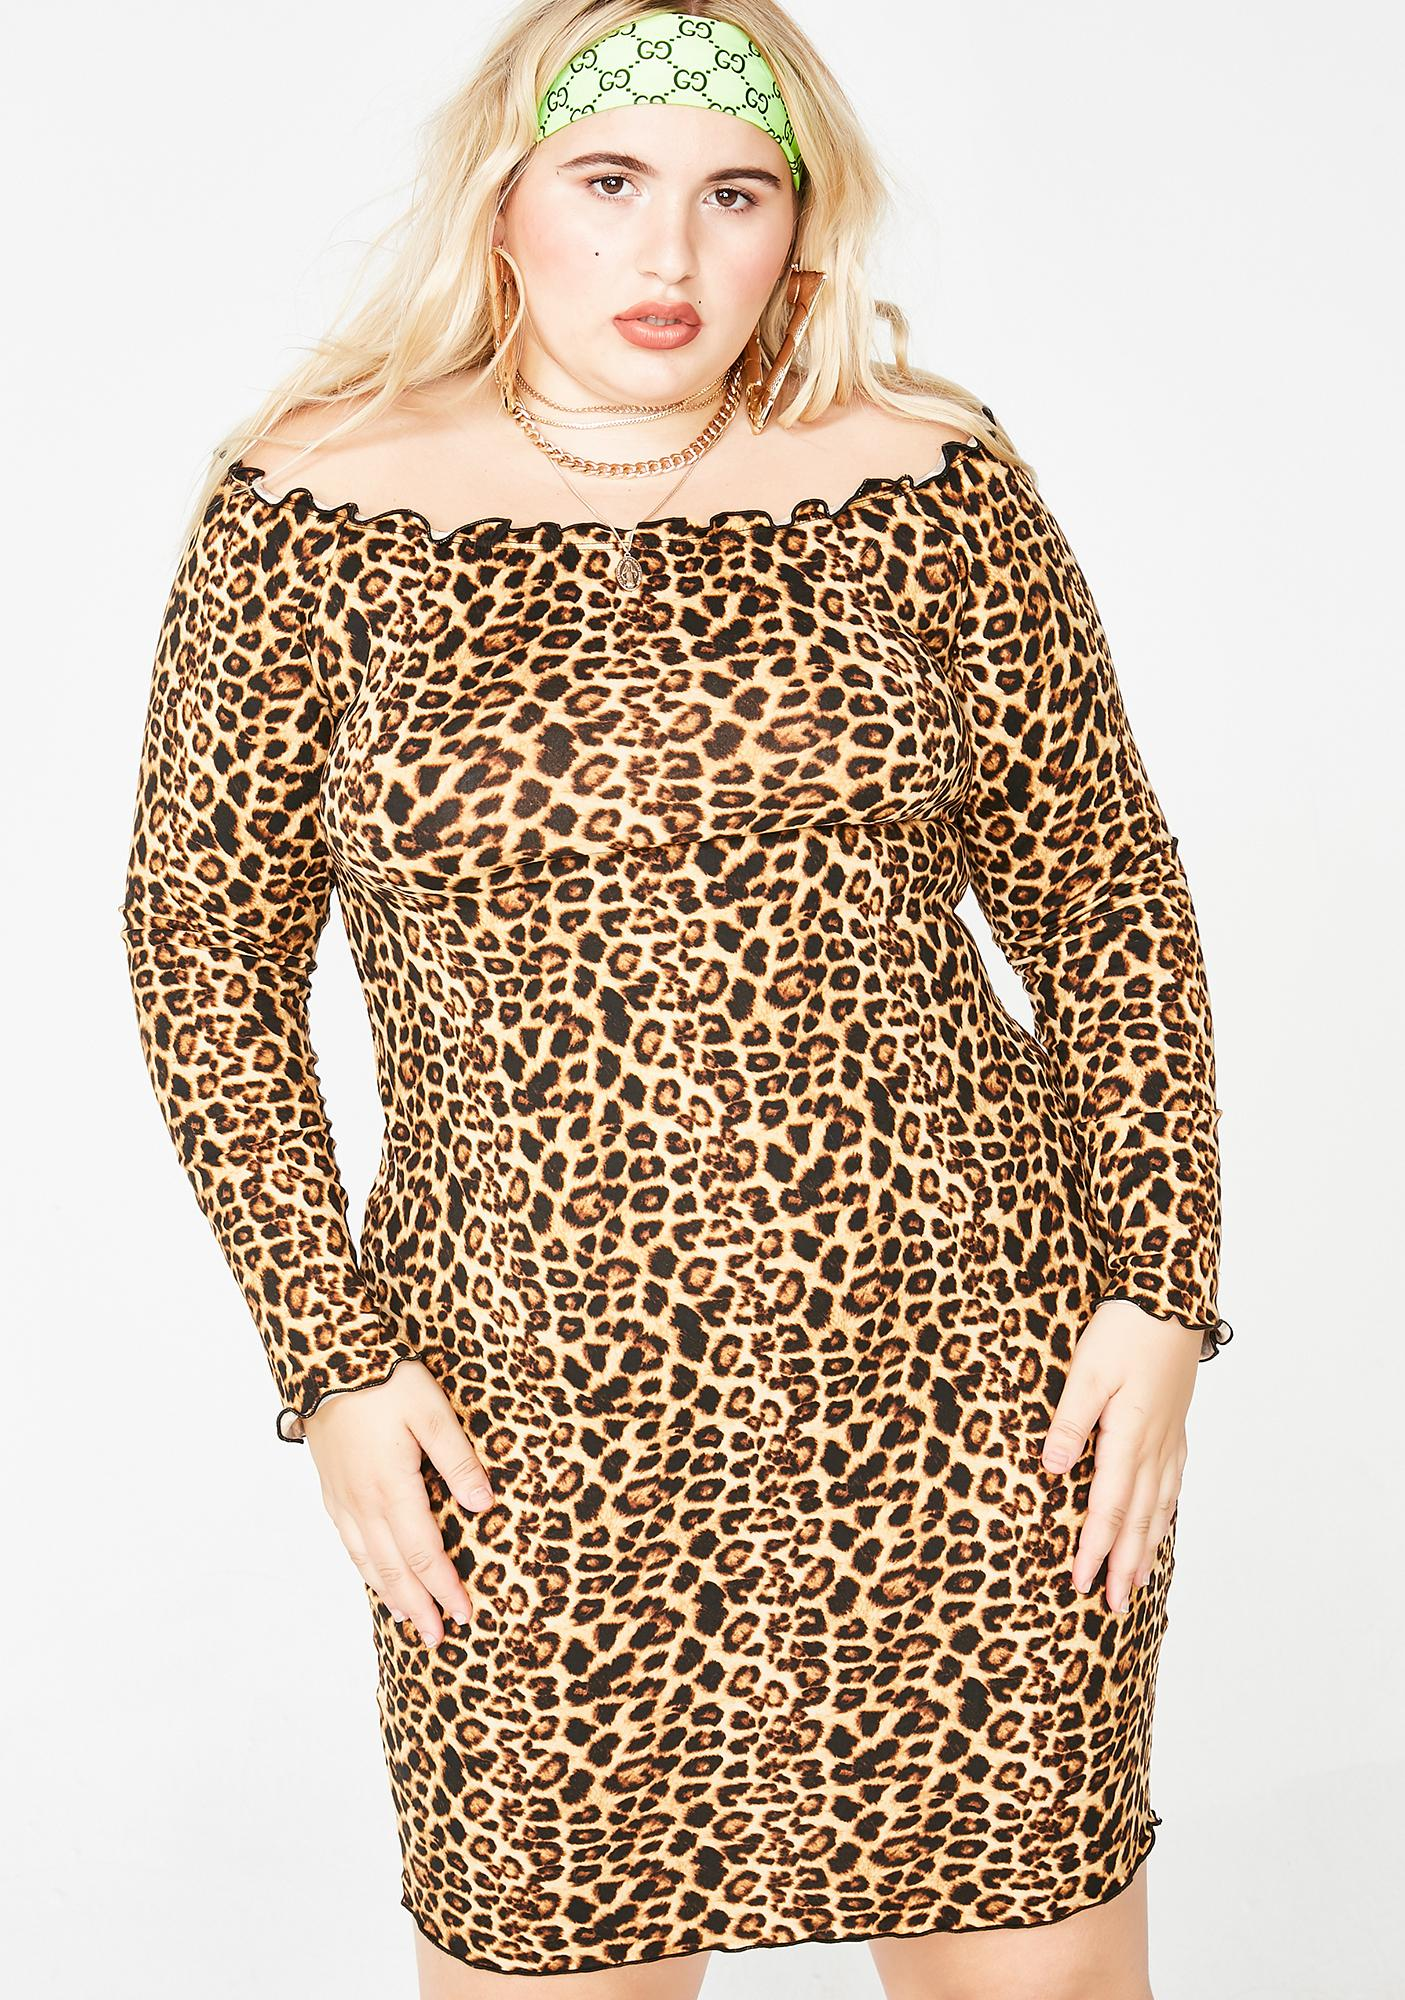 Kitty Clash Leopard Dress